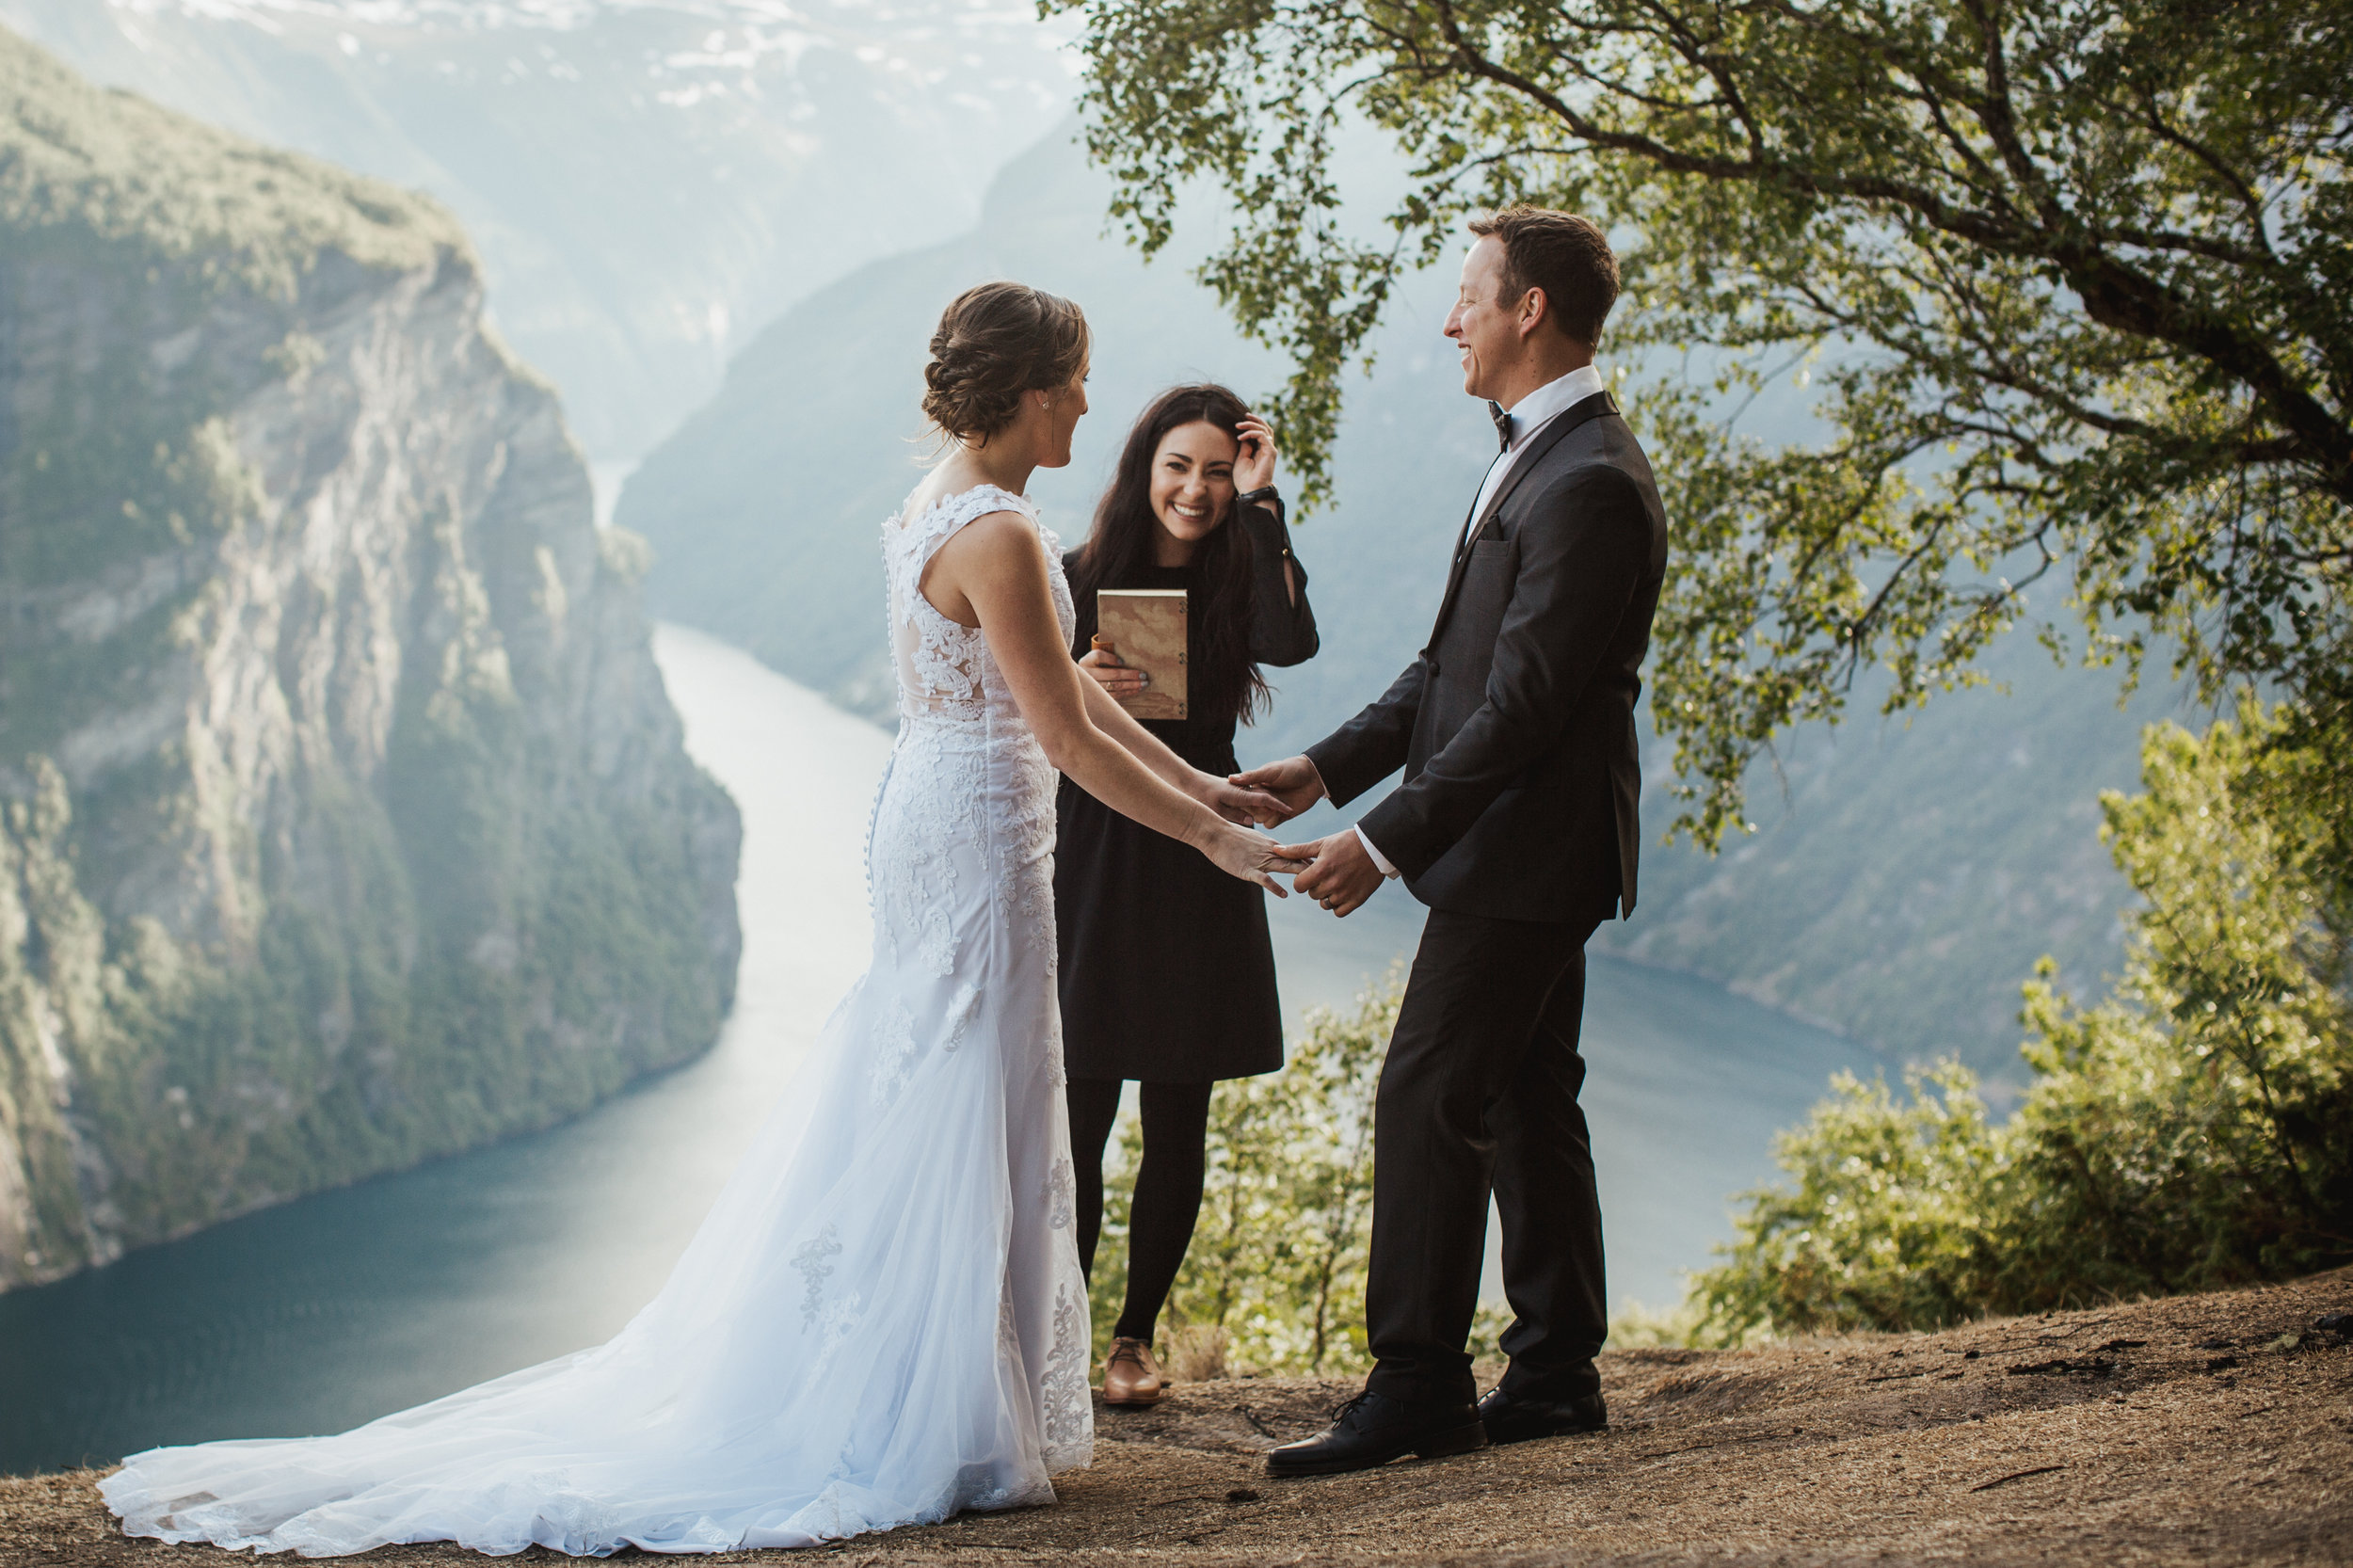 Promise Mountain Ceremony - Geirangerfjord, Norway